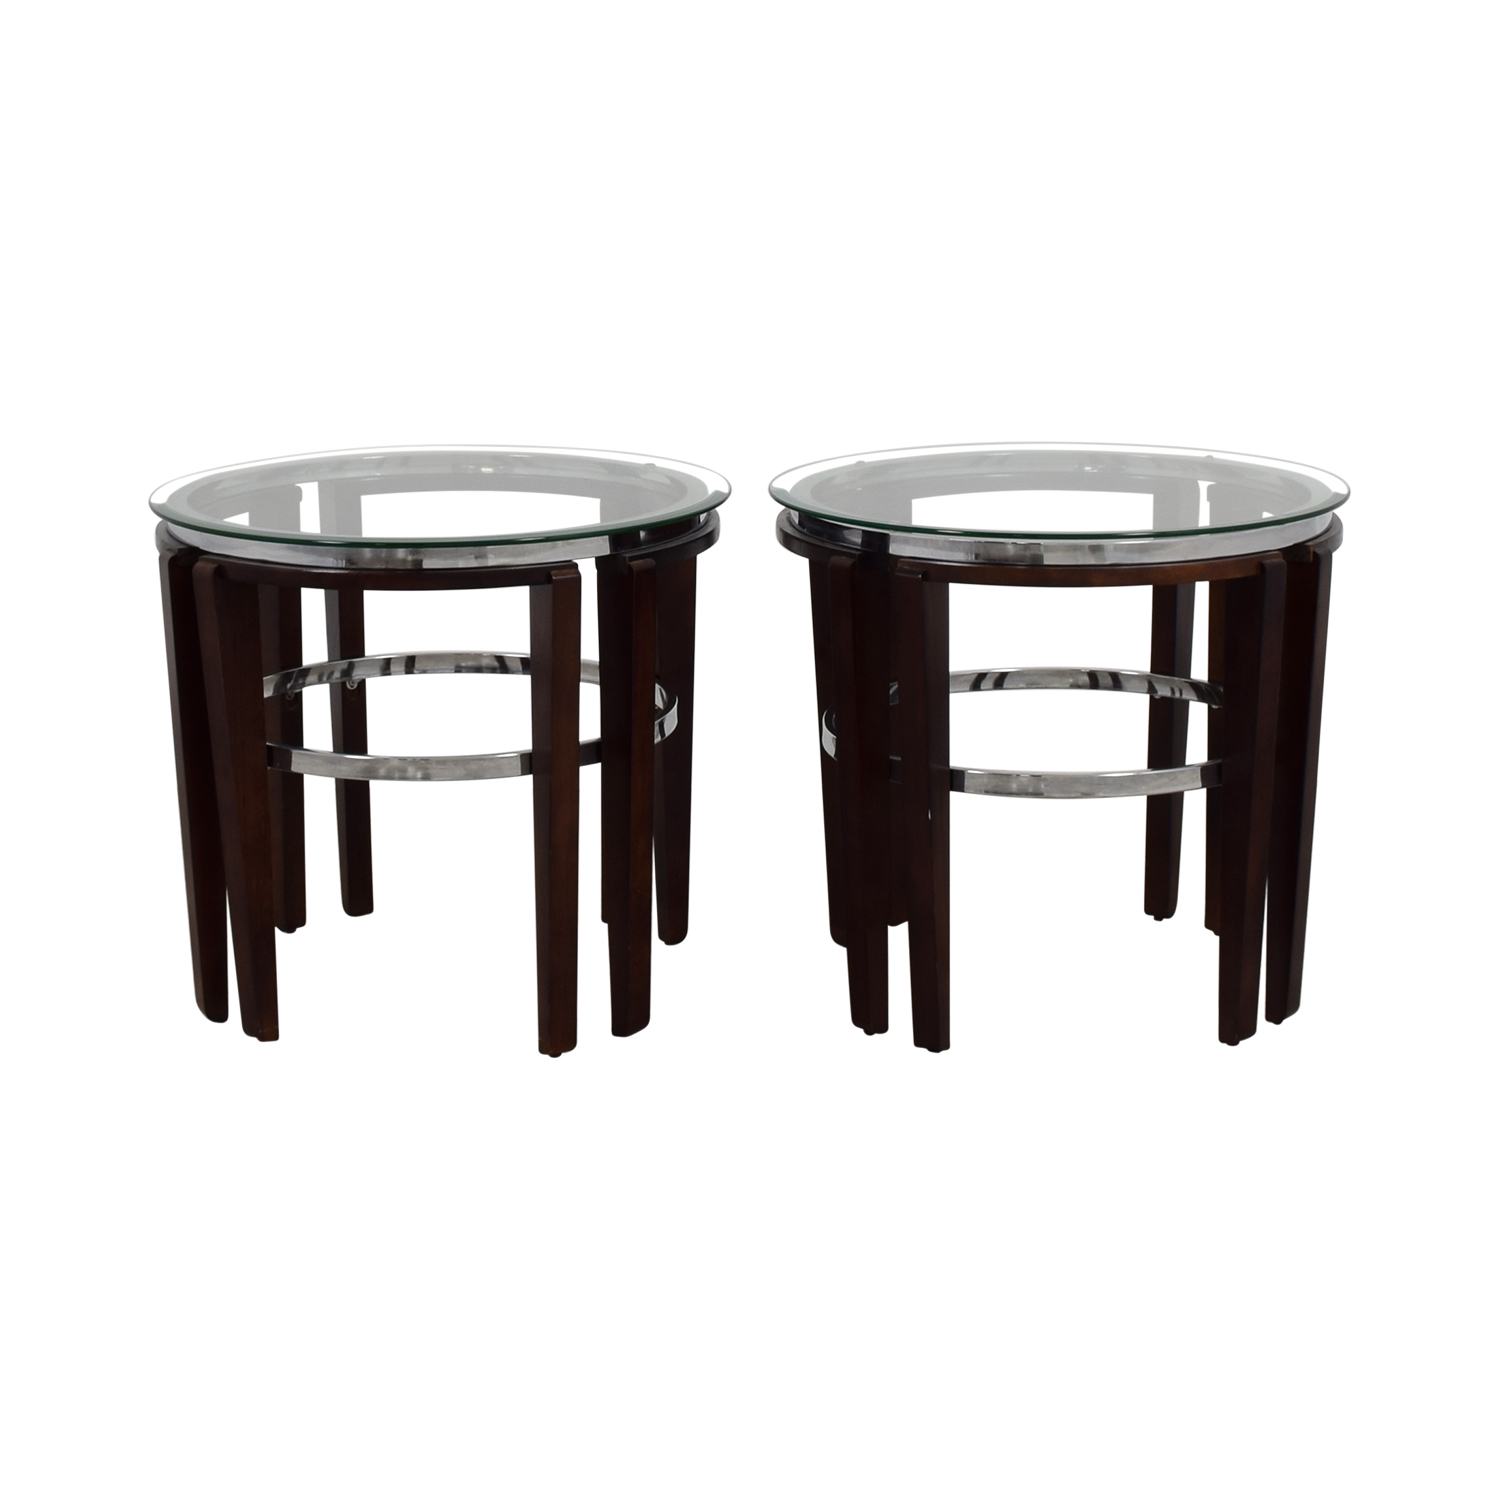 Round Glass and Wood End Tables on sale